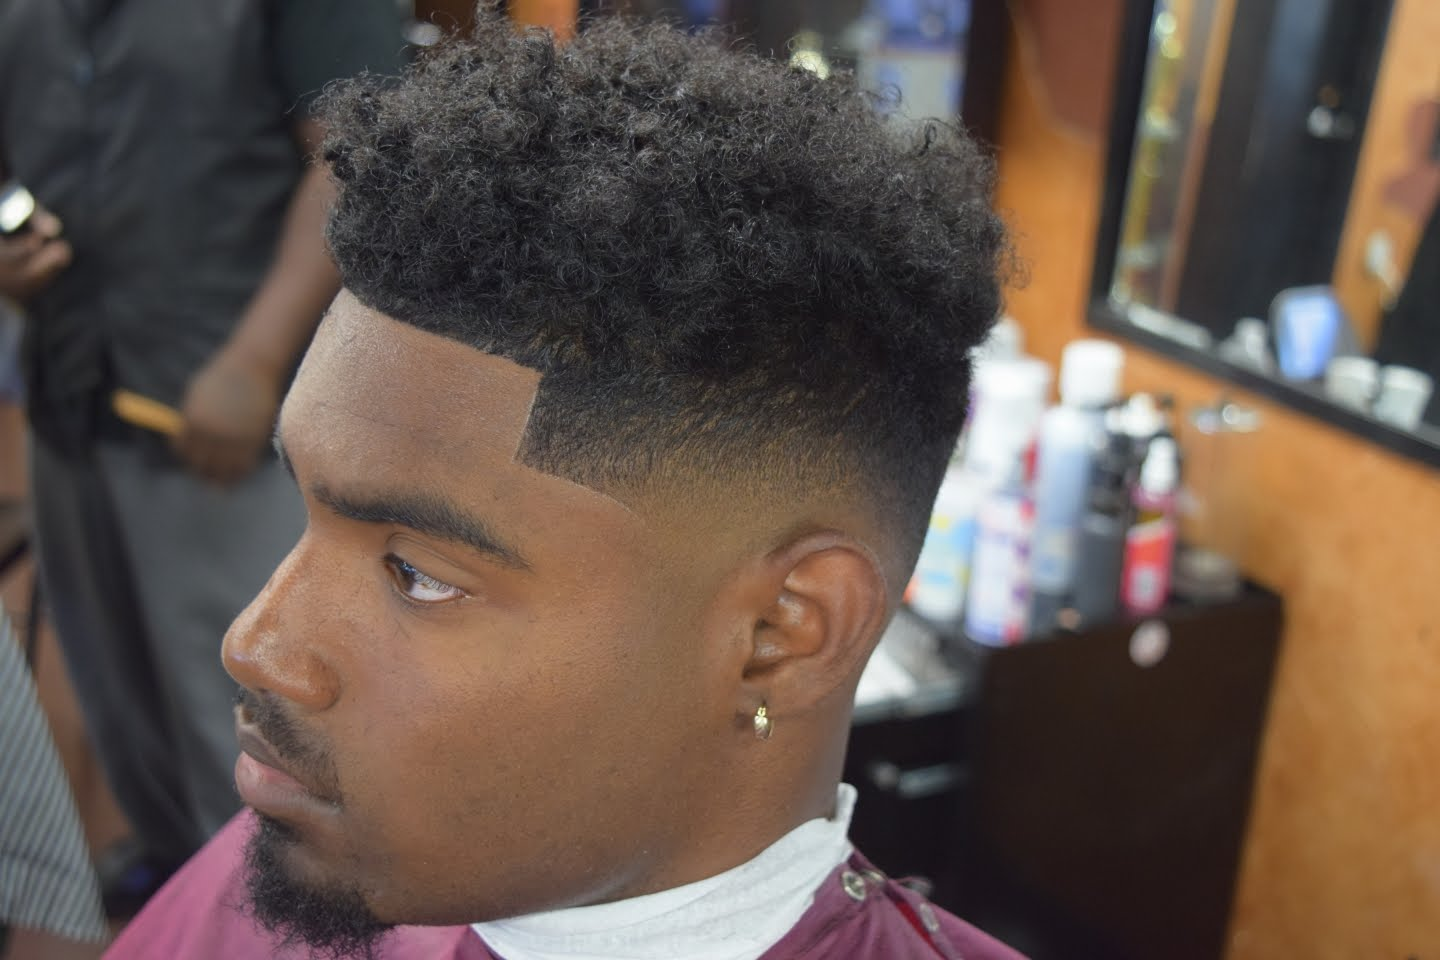 Black Men Hair Cut Styles: 25 Awesome High Top Fade Styles